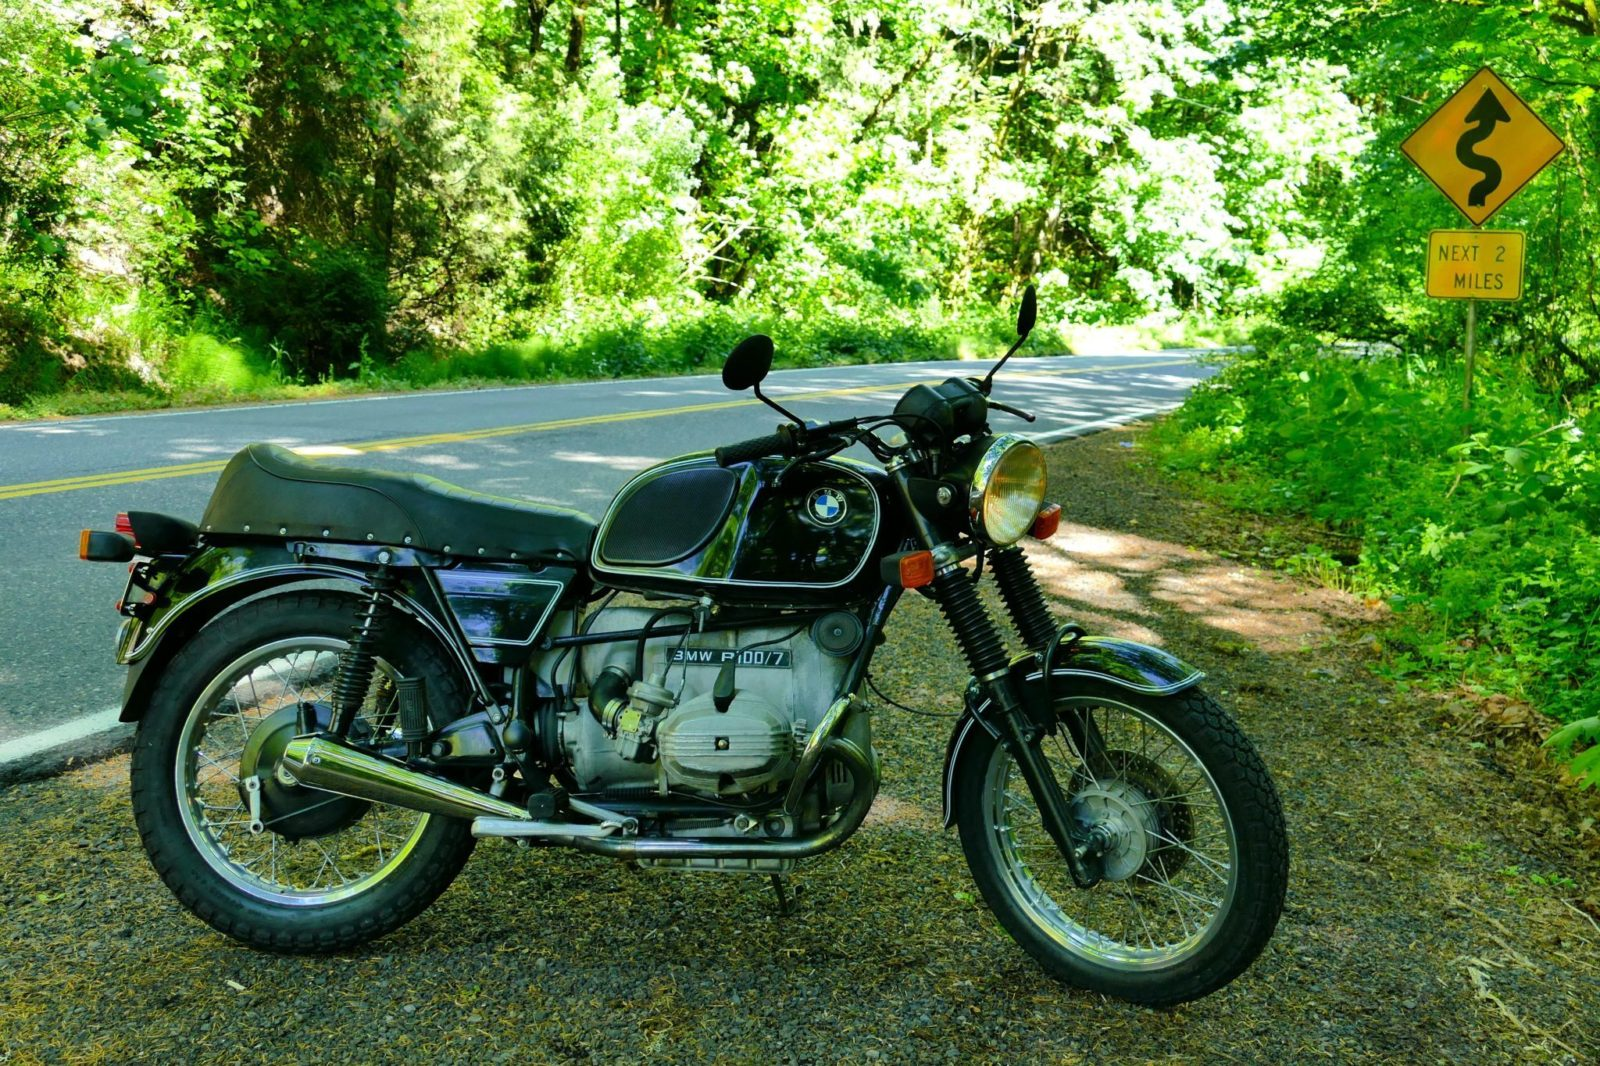 numbers-matching-1977-bmw-r100/7-is-retro-cool-dialed-up-to-eleven